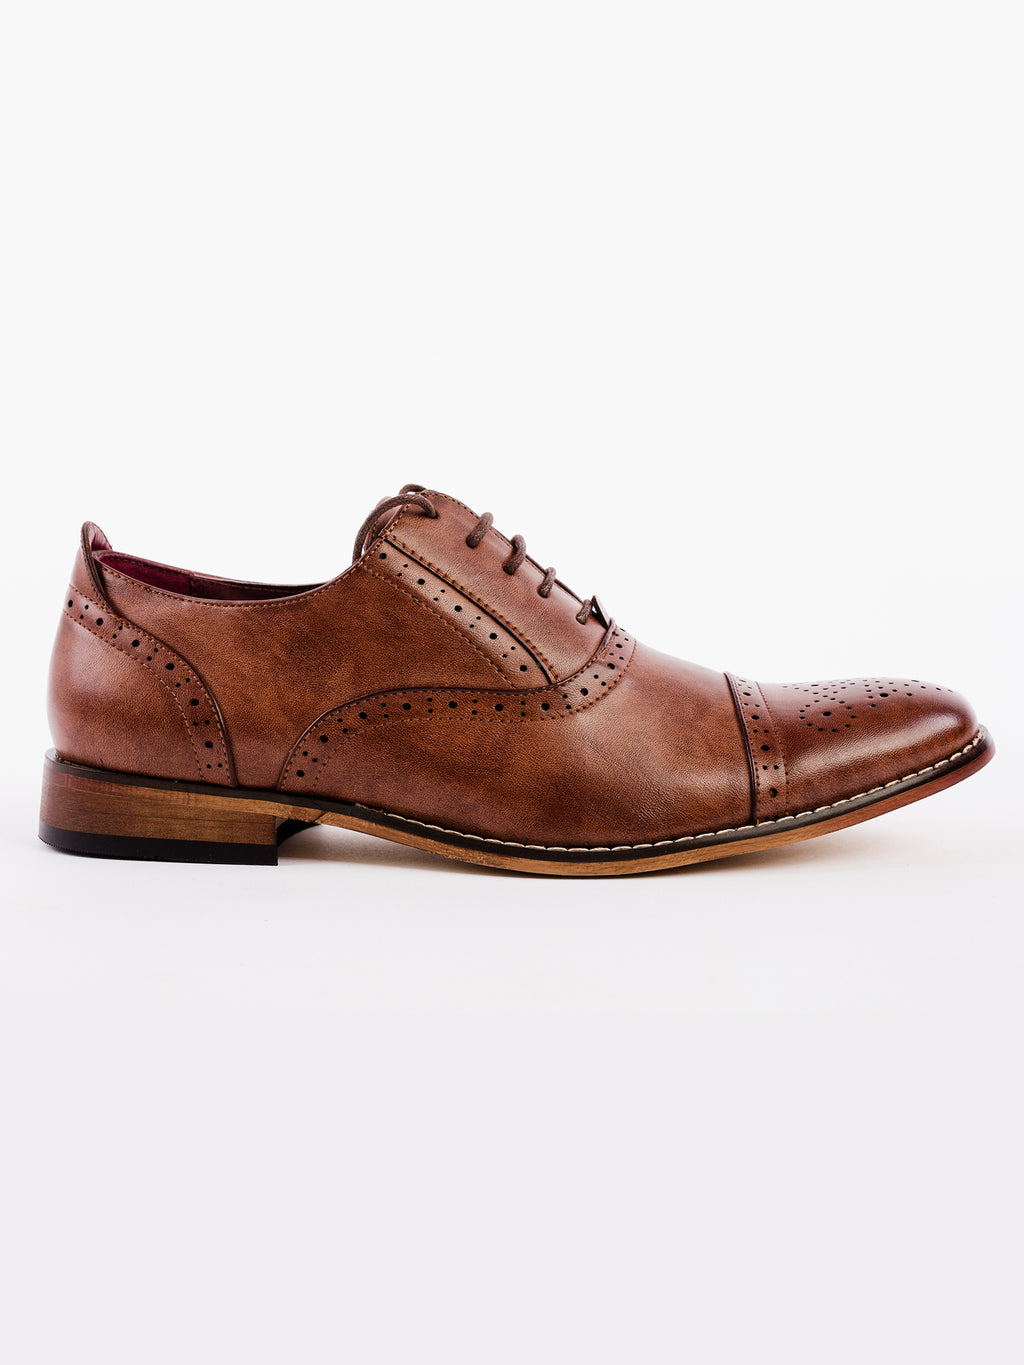 Mid Brown Capped Oxford Brogue Shoe